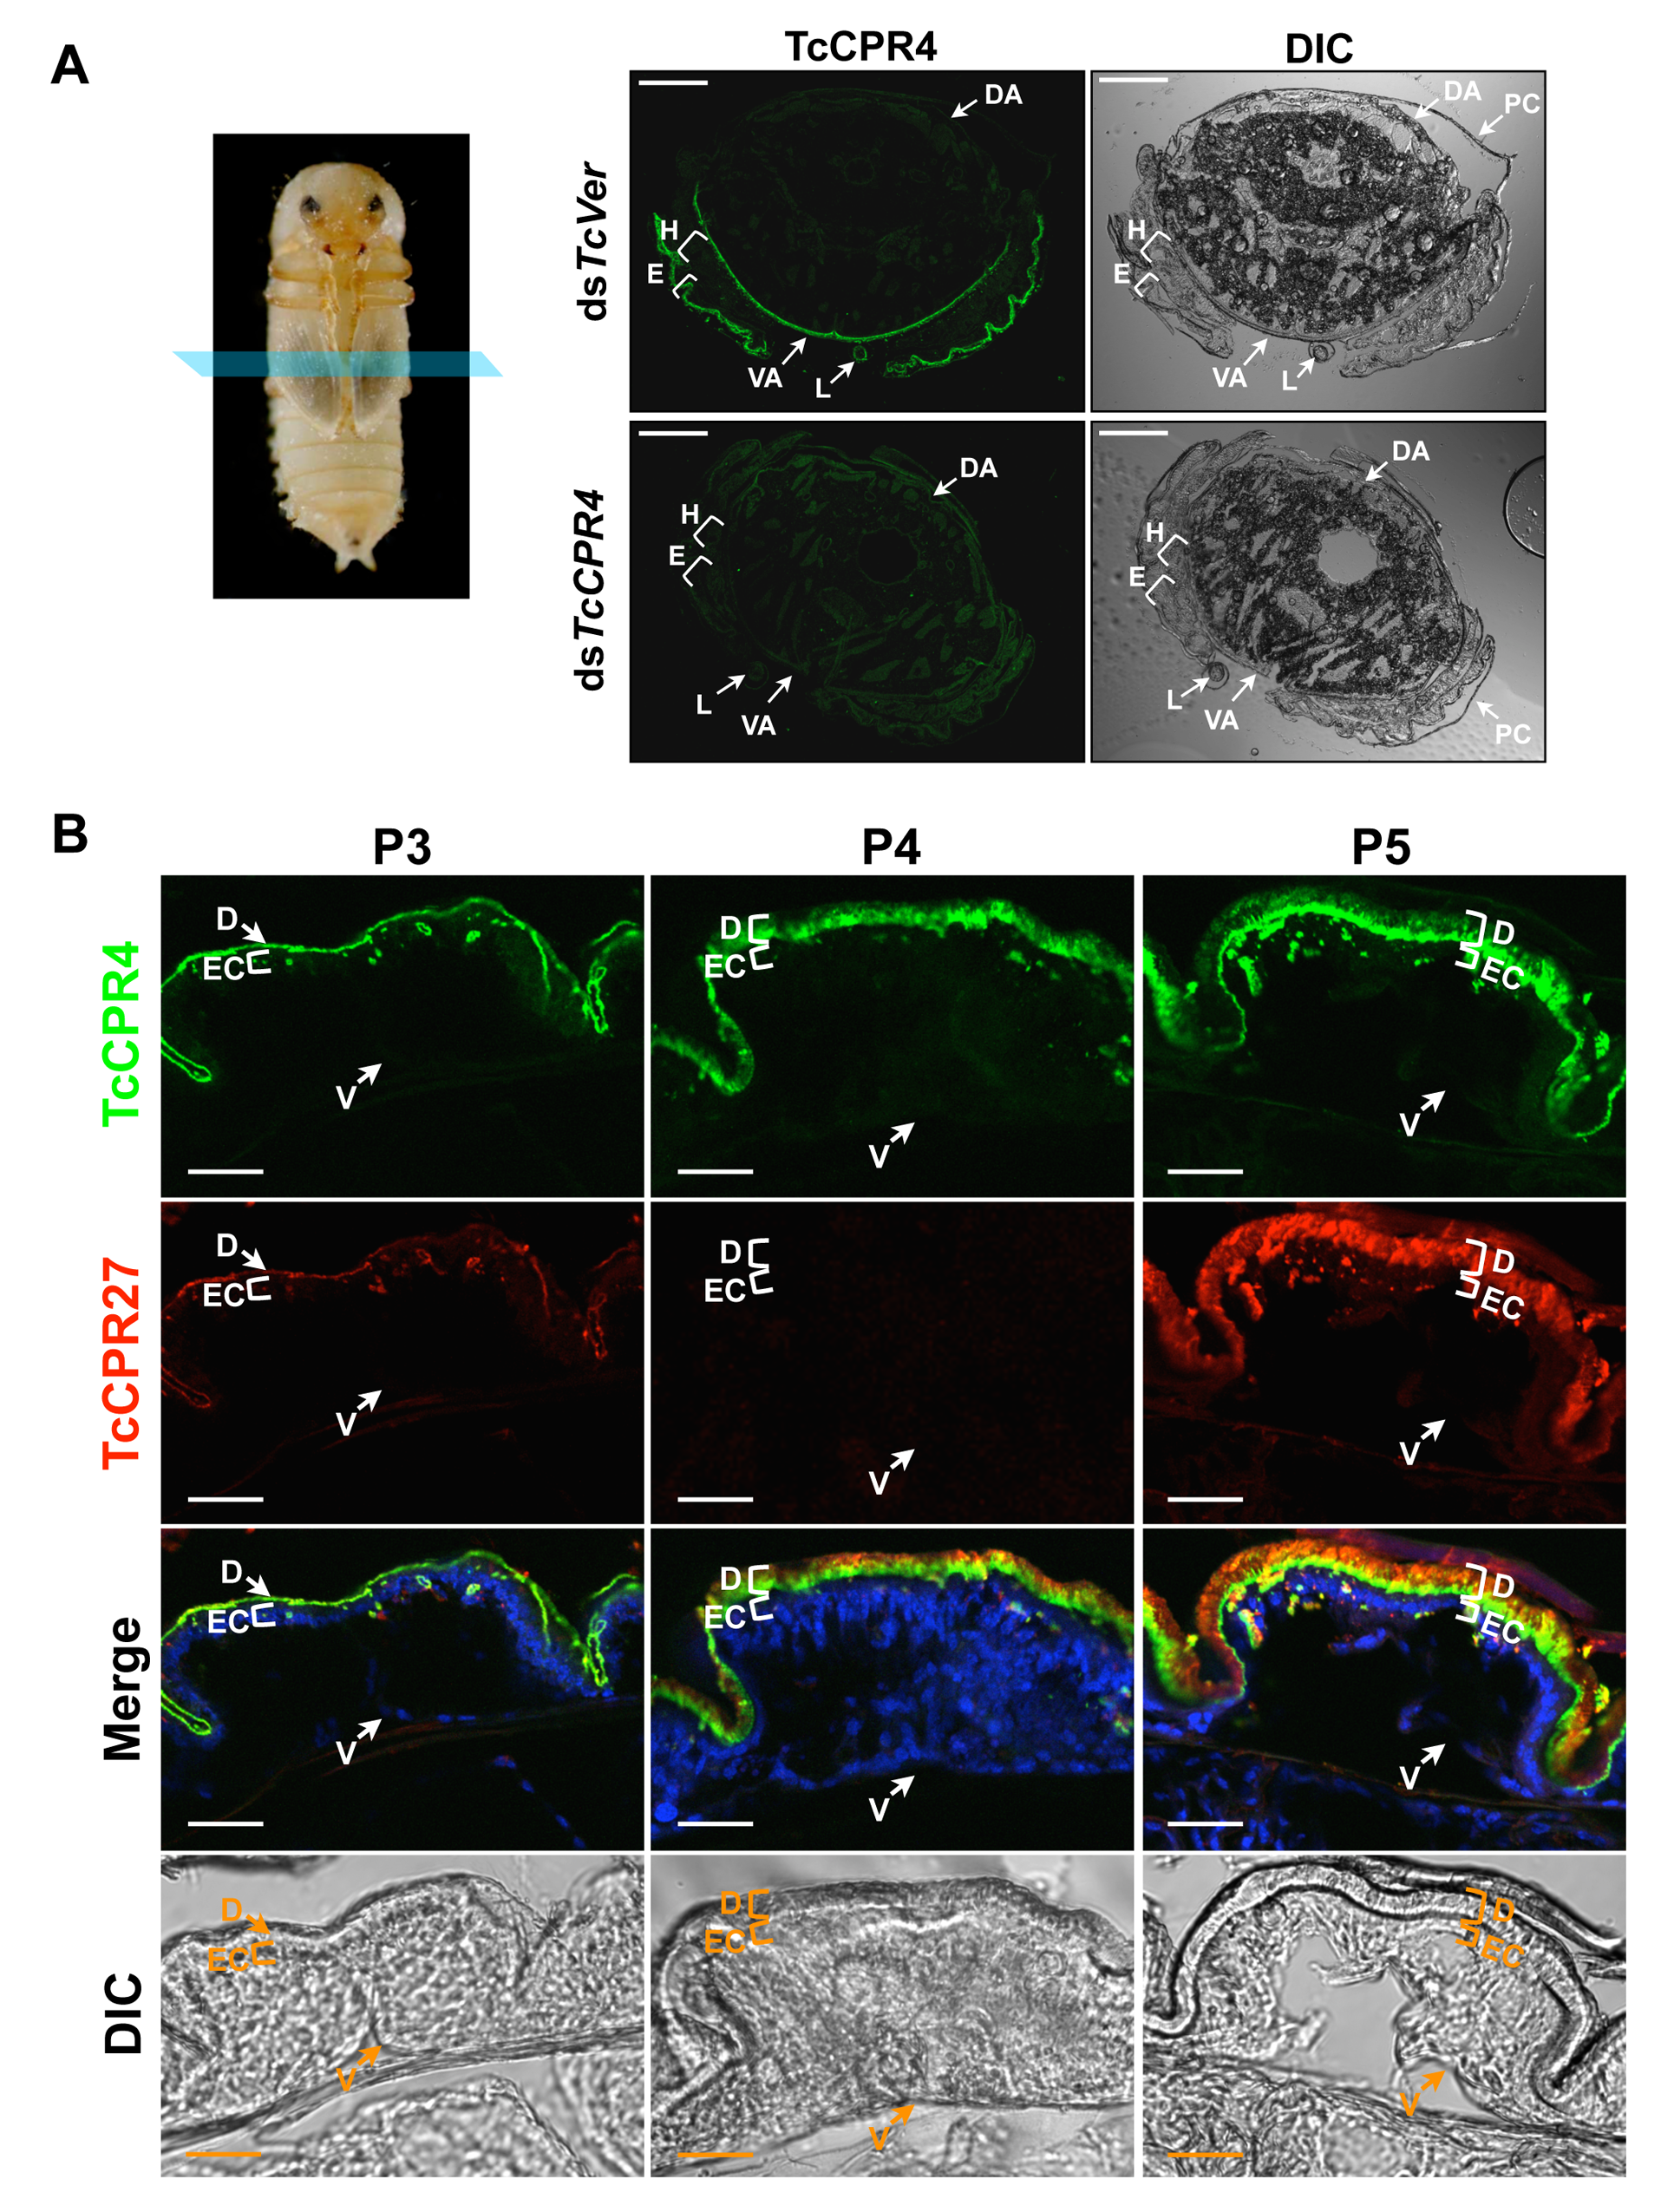 Localization of TcCPR4 protein in adult cuticles of <i>T</i>. <i>castaneum</i>.